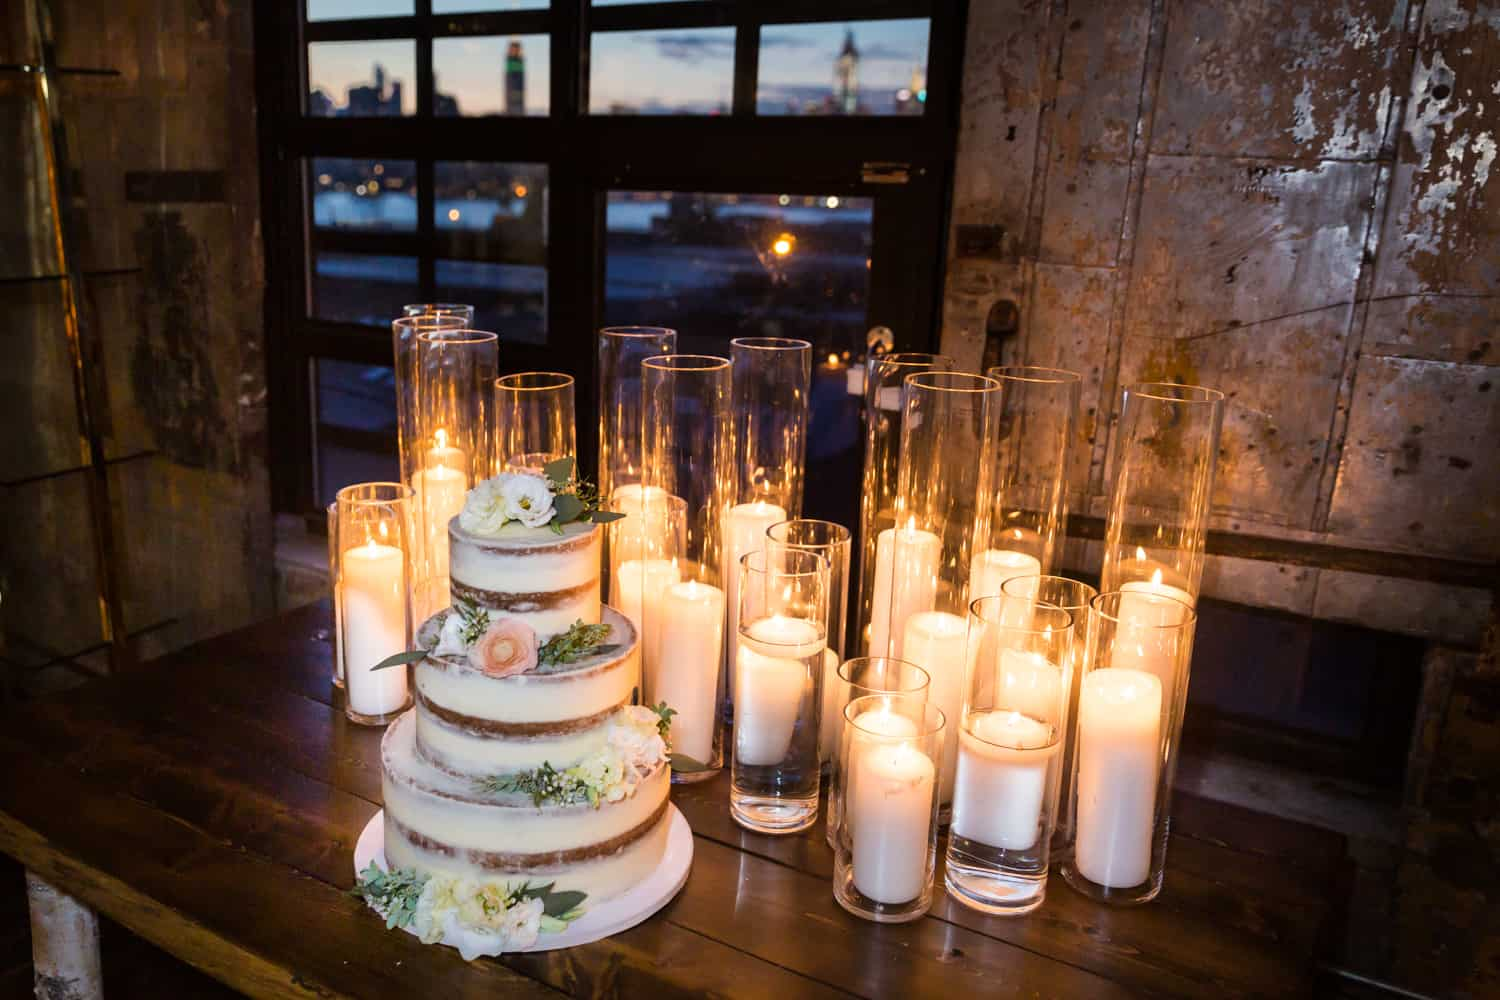 Wedding cake and rows of candles on table with view of NYC skyline through window